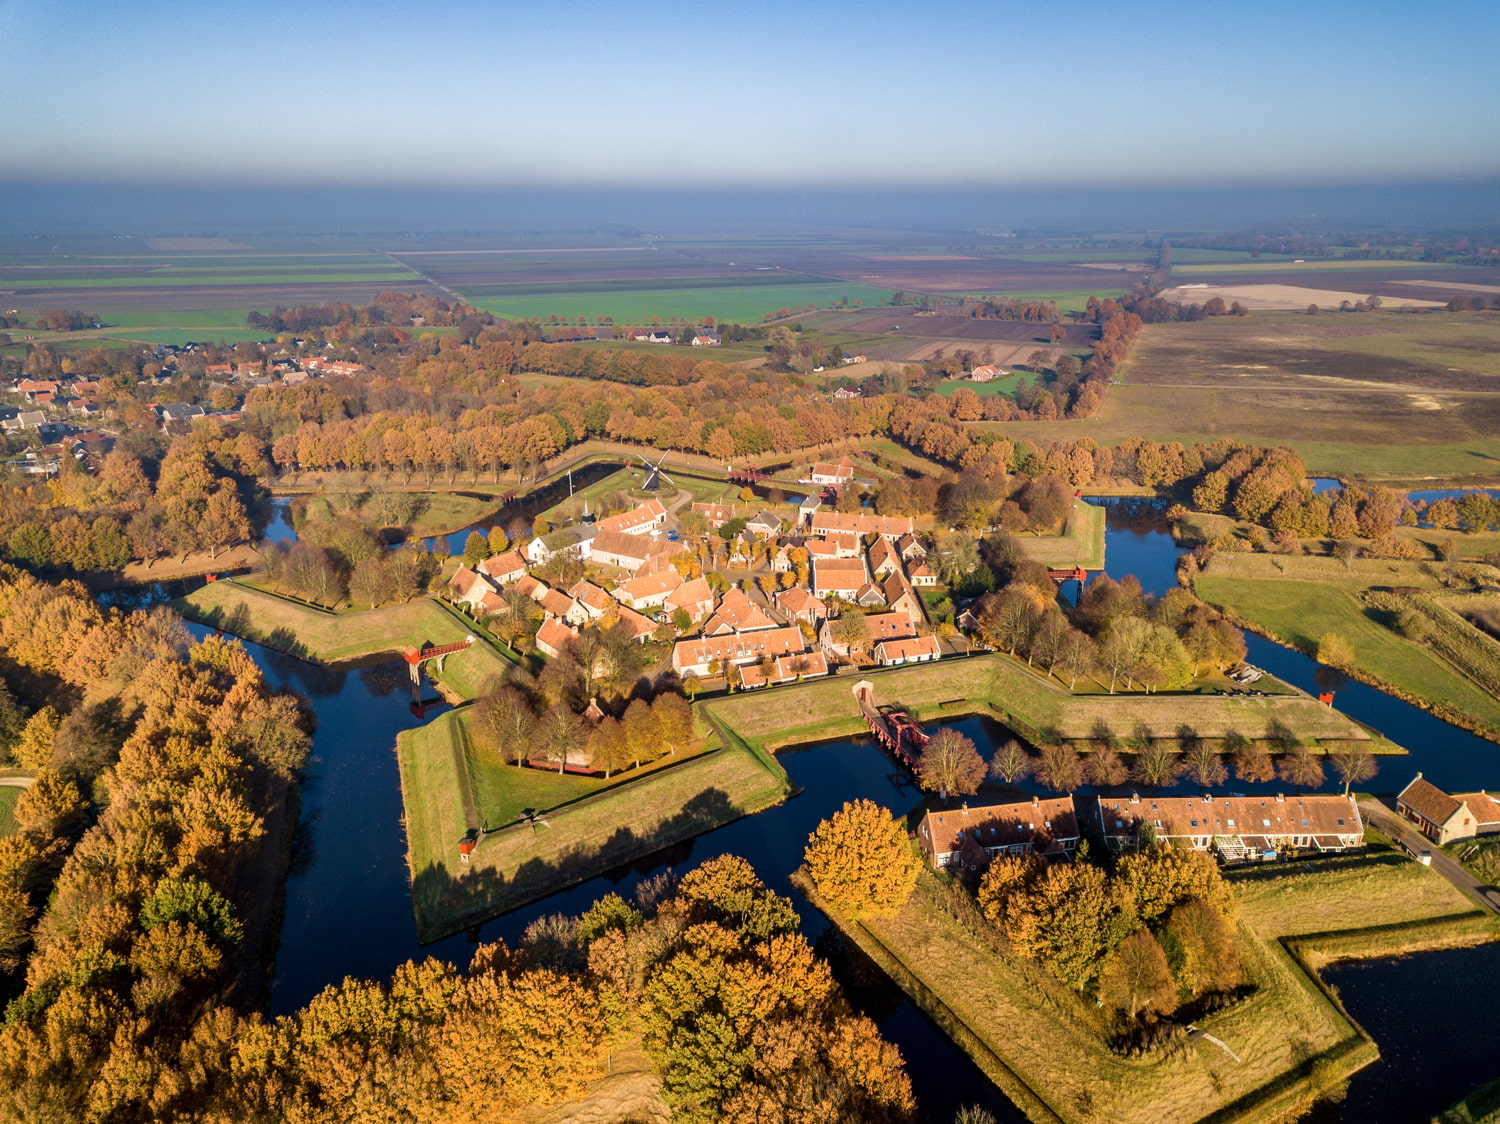 The Bourtange fortress